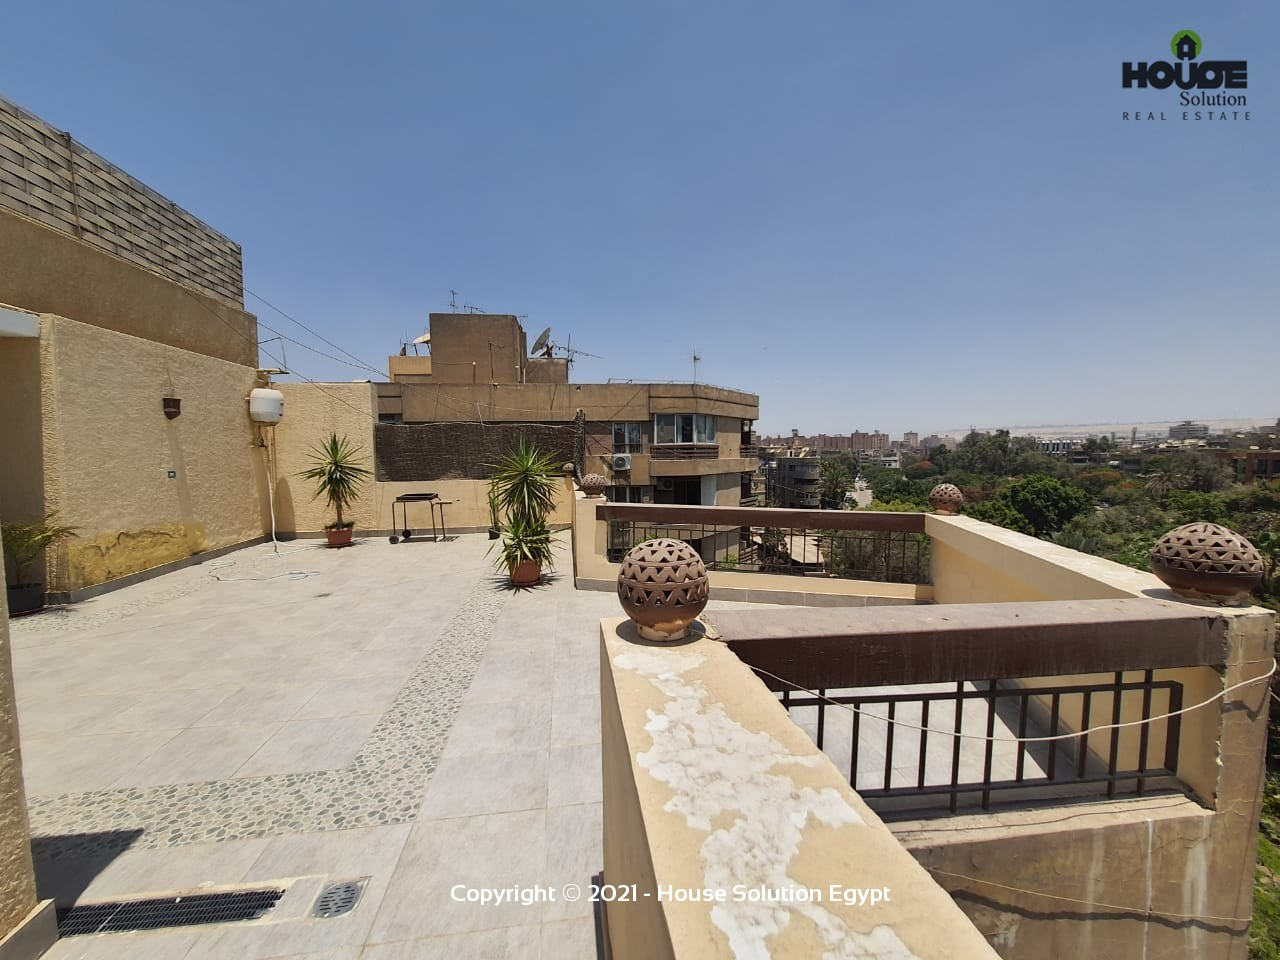 Sunny Furnished Penthouse With Large Terrace For Rent In Sarayat El Maadi  - 5016 Featured Image